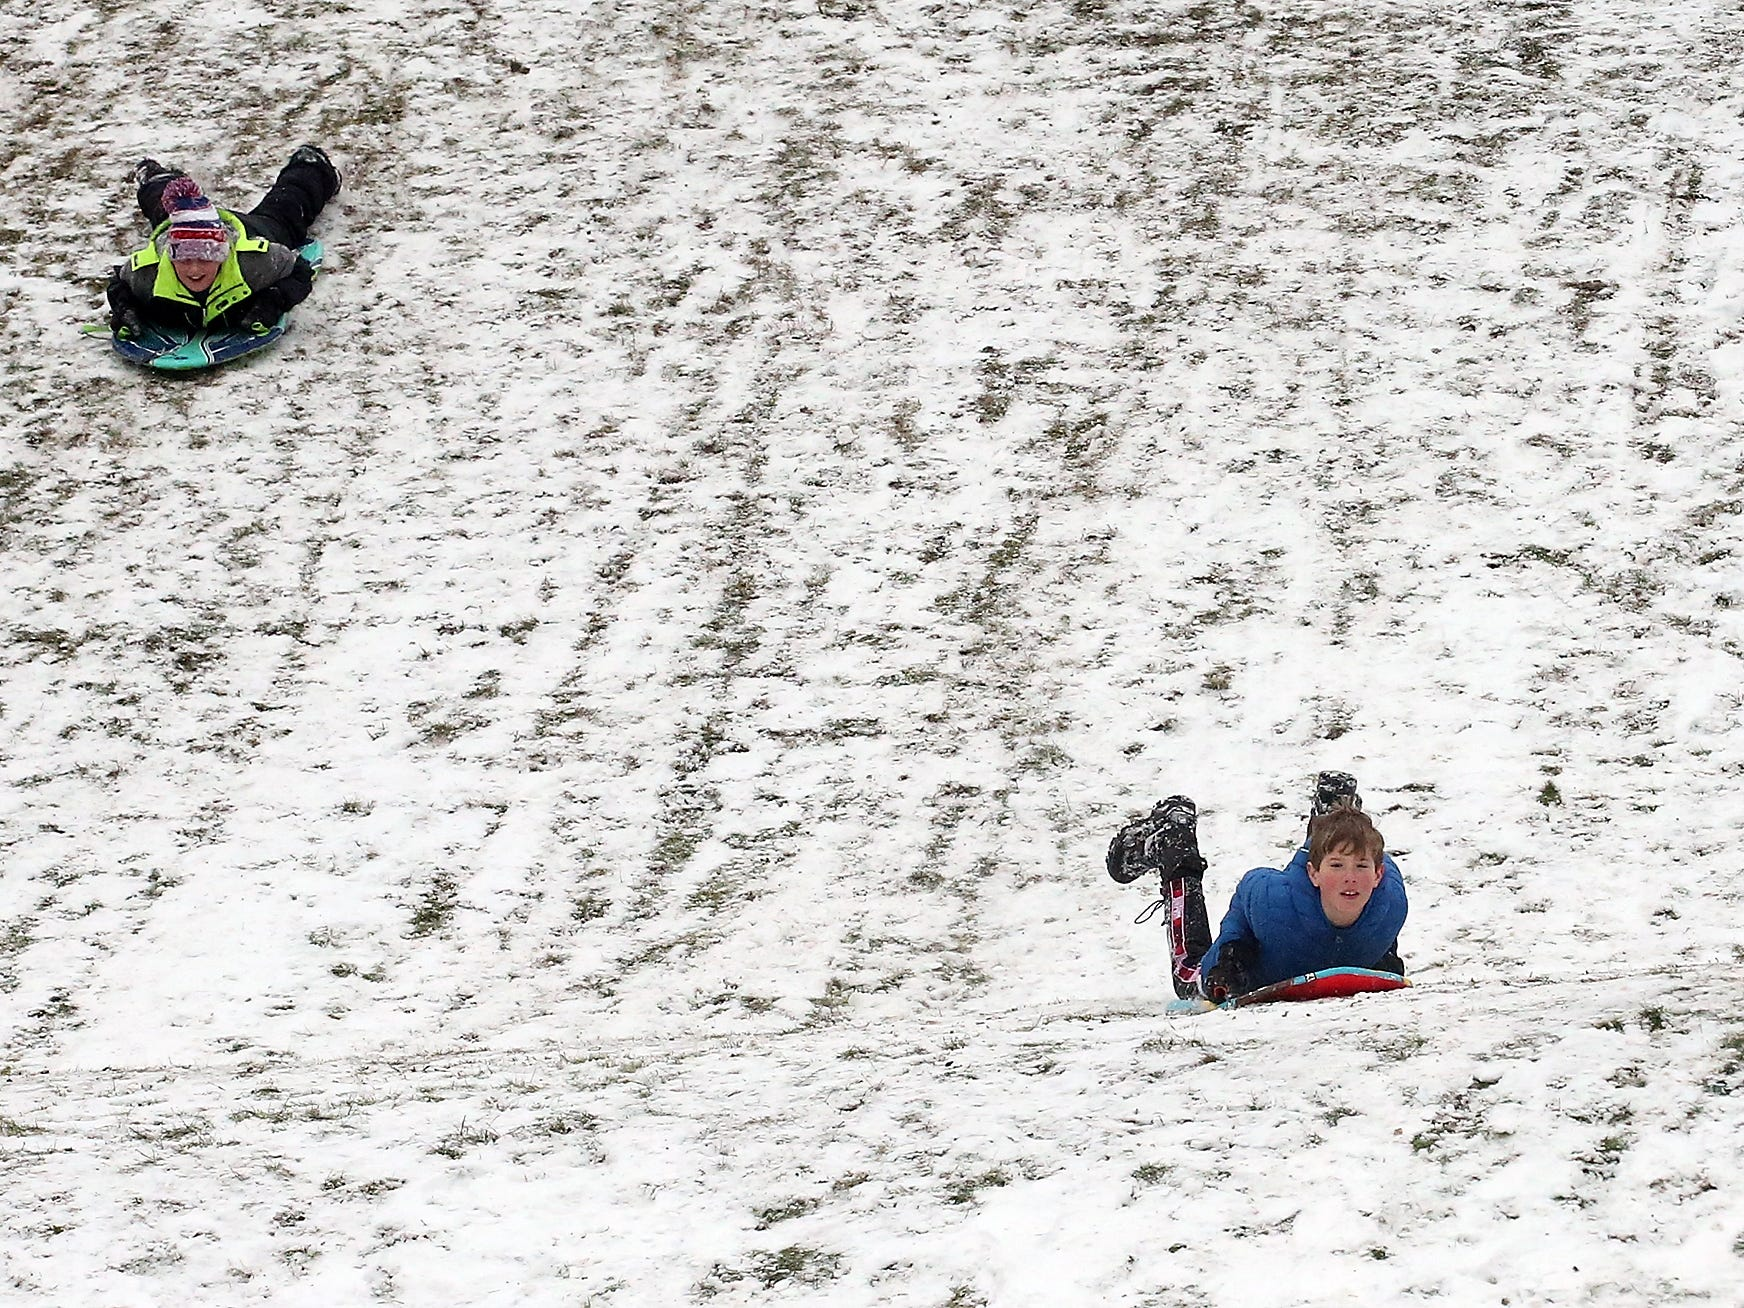 Sledders zoom down the hill at Silver Ridge Elementary School in Silverdale on Monday, February 4, 2019.